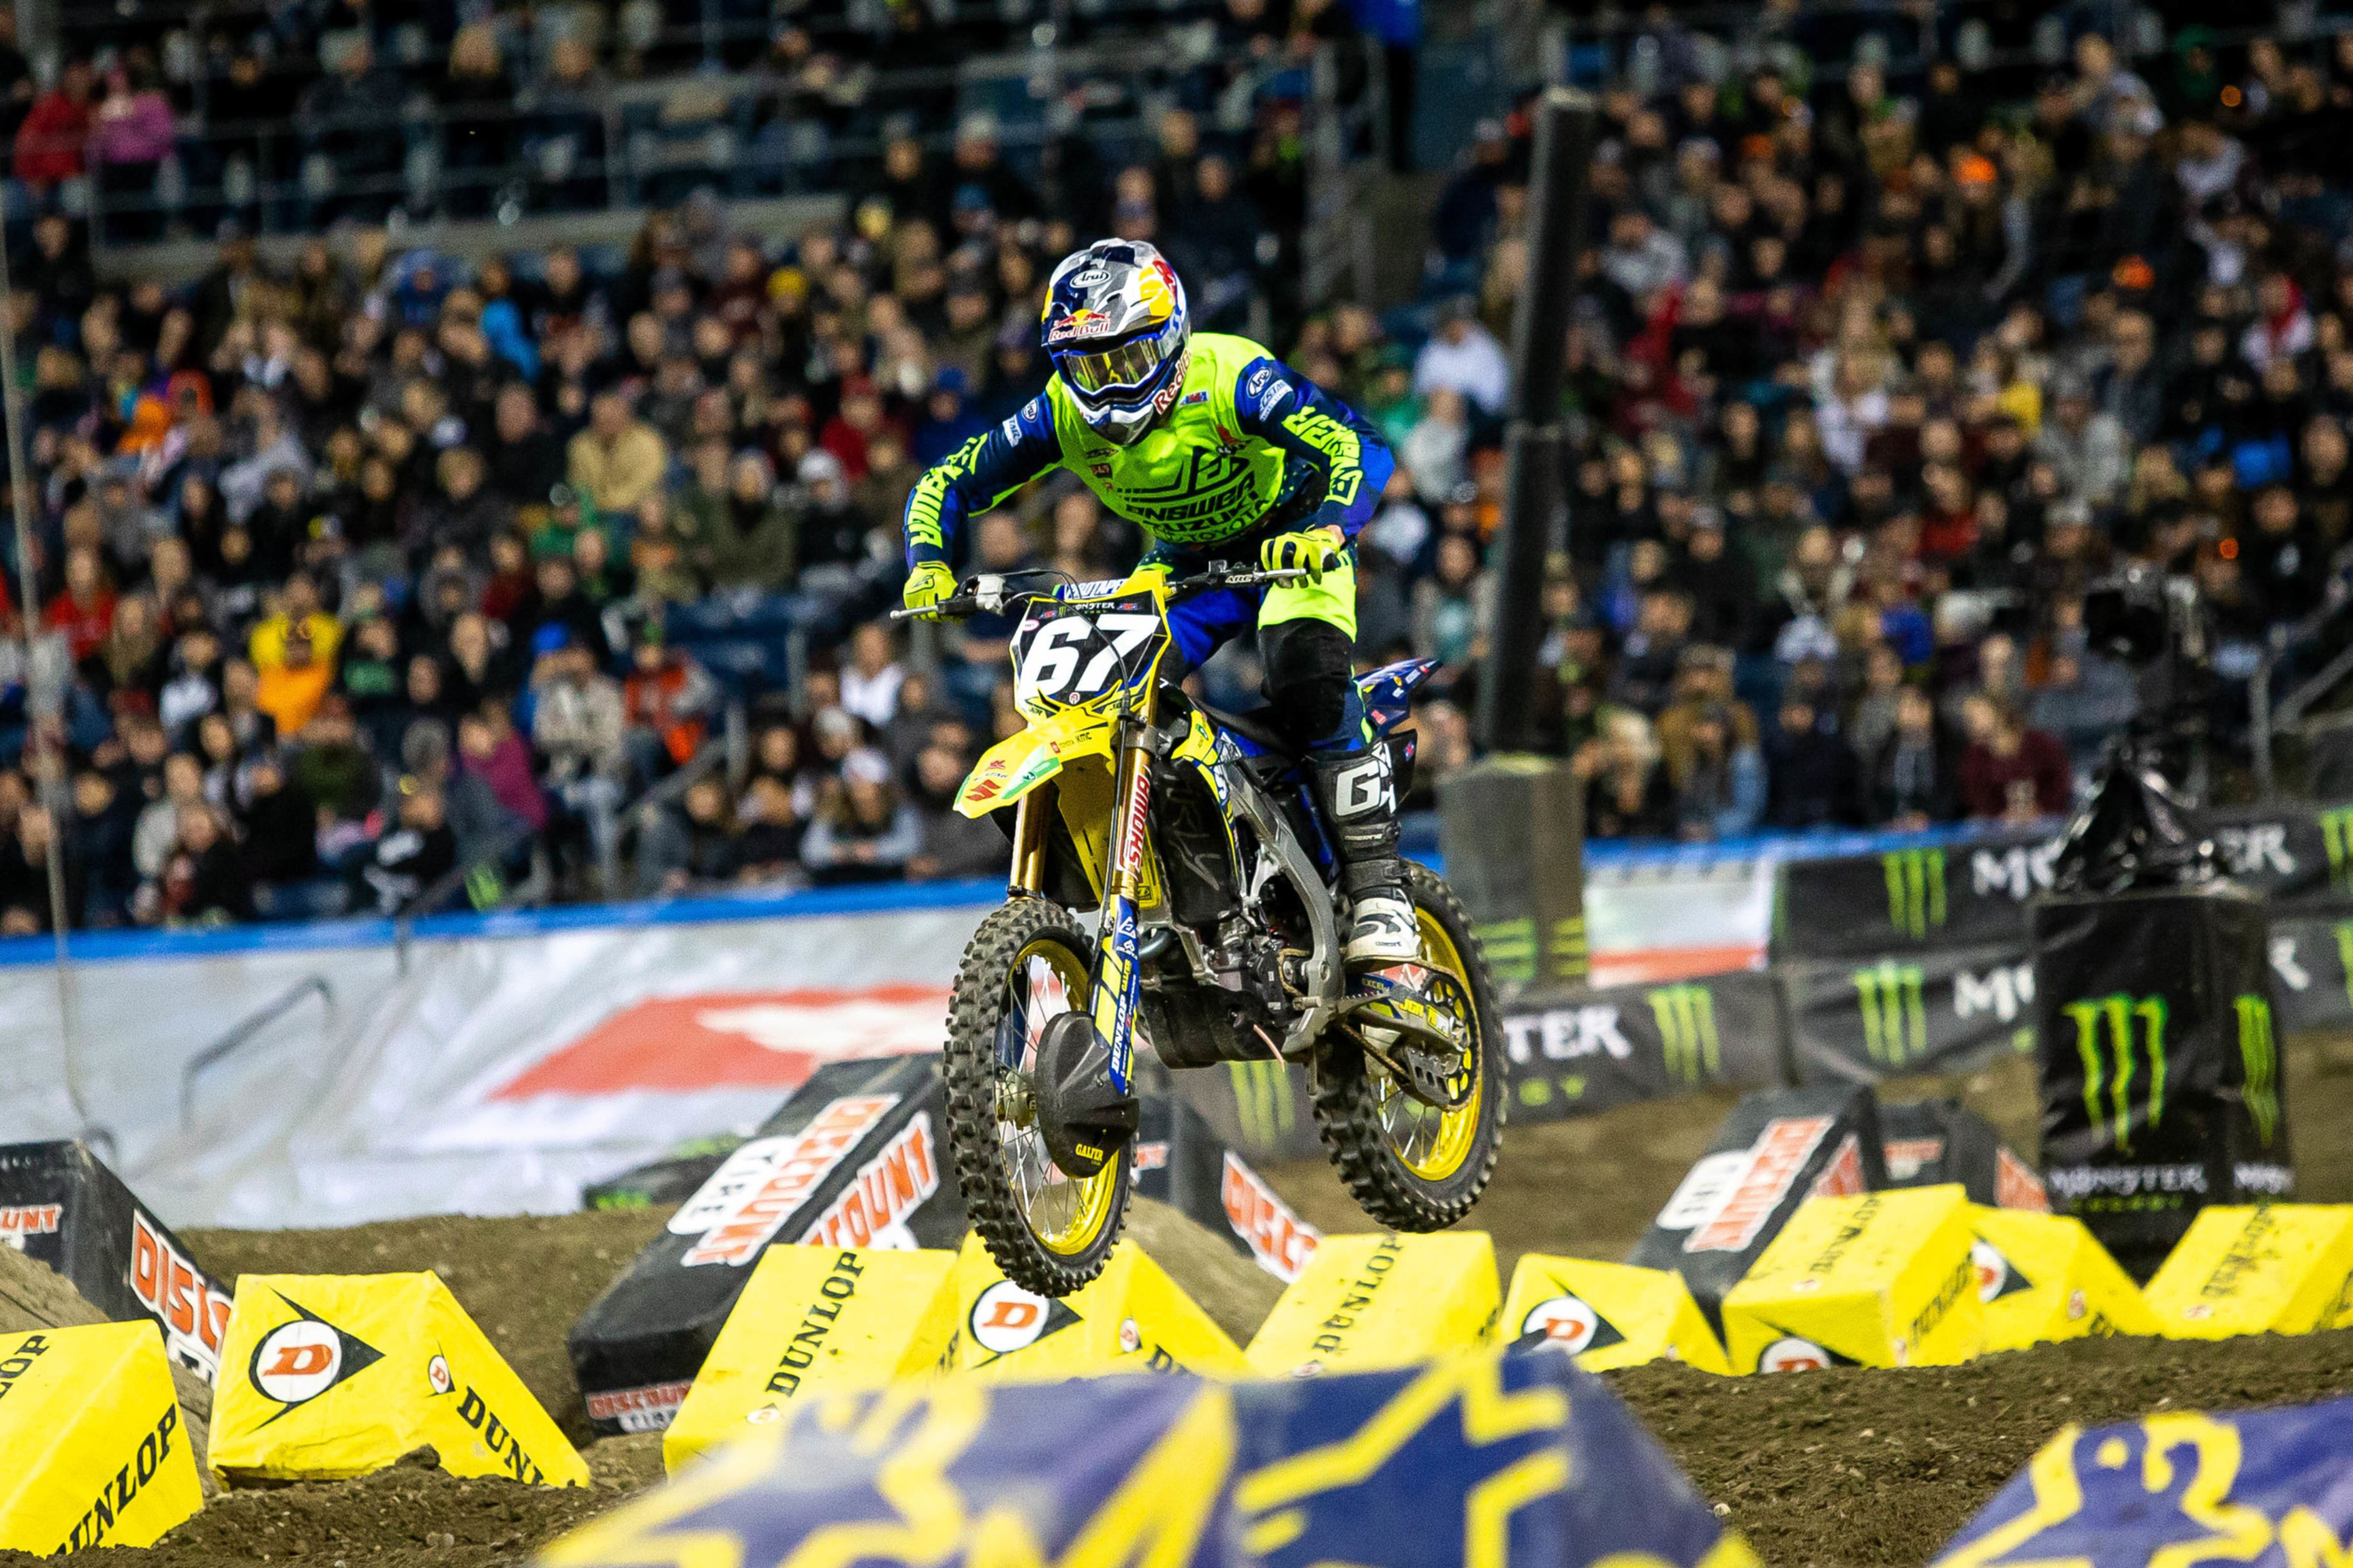 Enzo Lopes (#67) jumps through the treacherous whoops section on his RM-Z250 - Seattle Supercross